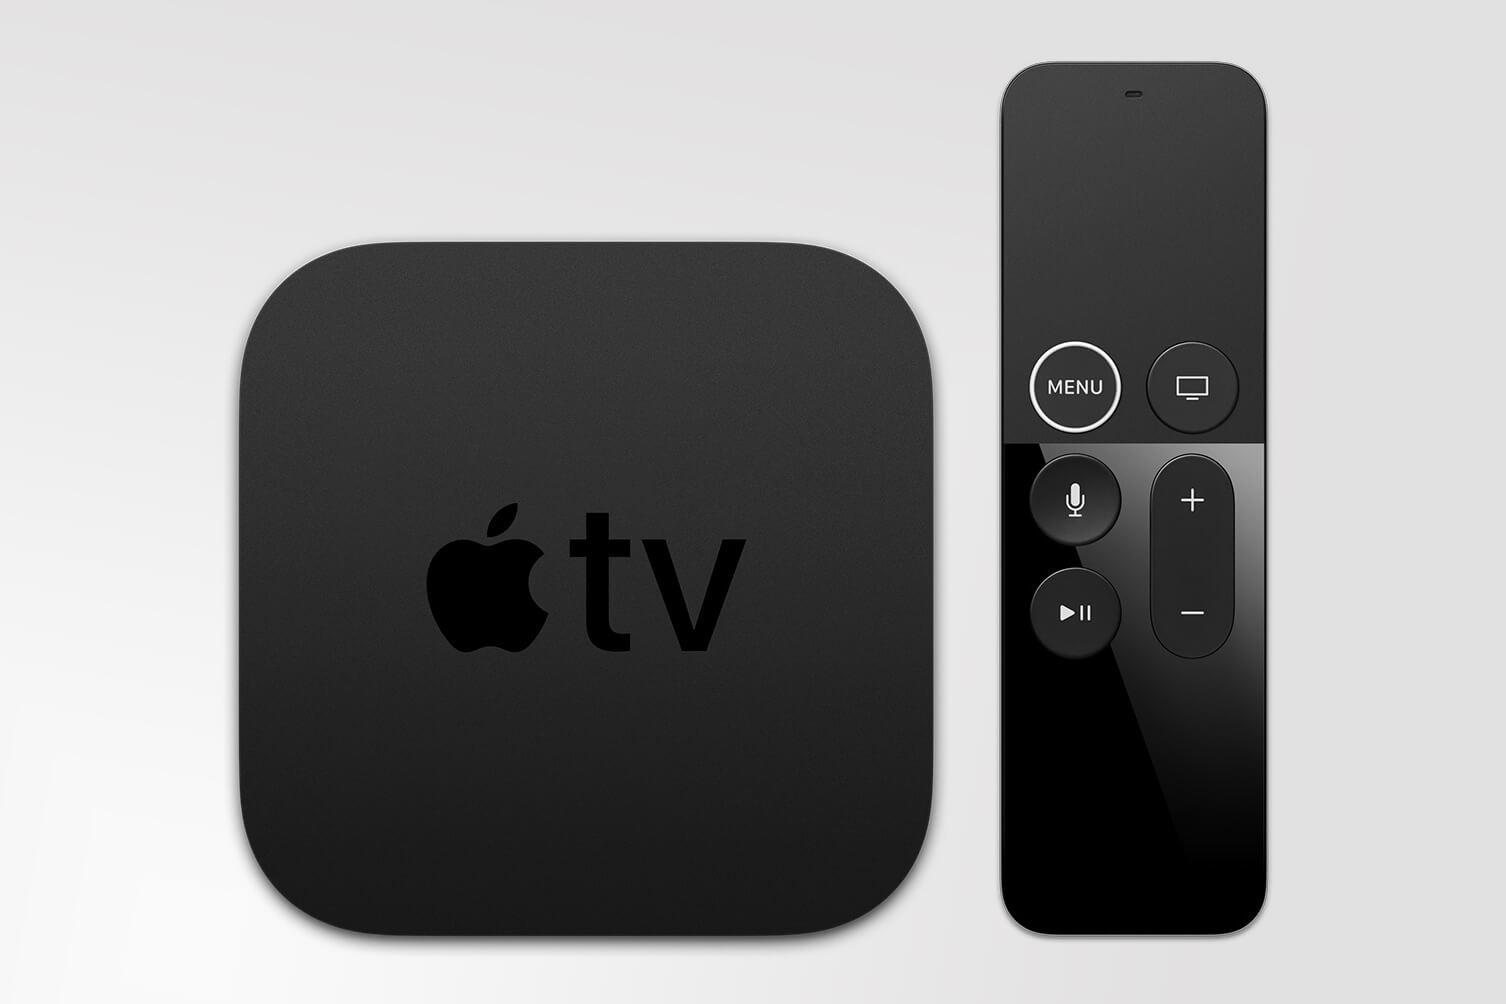 iTunes 4K content can only be streamed, not downloaded; new Apple TV can't play 4K YouTube videos